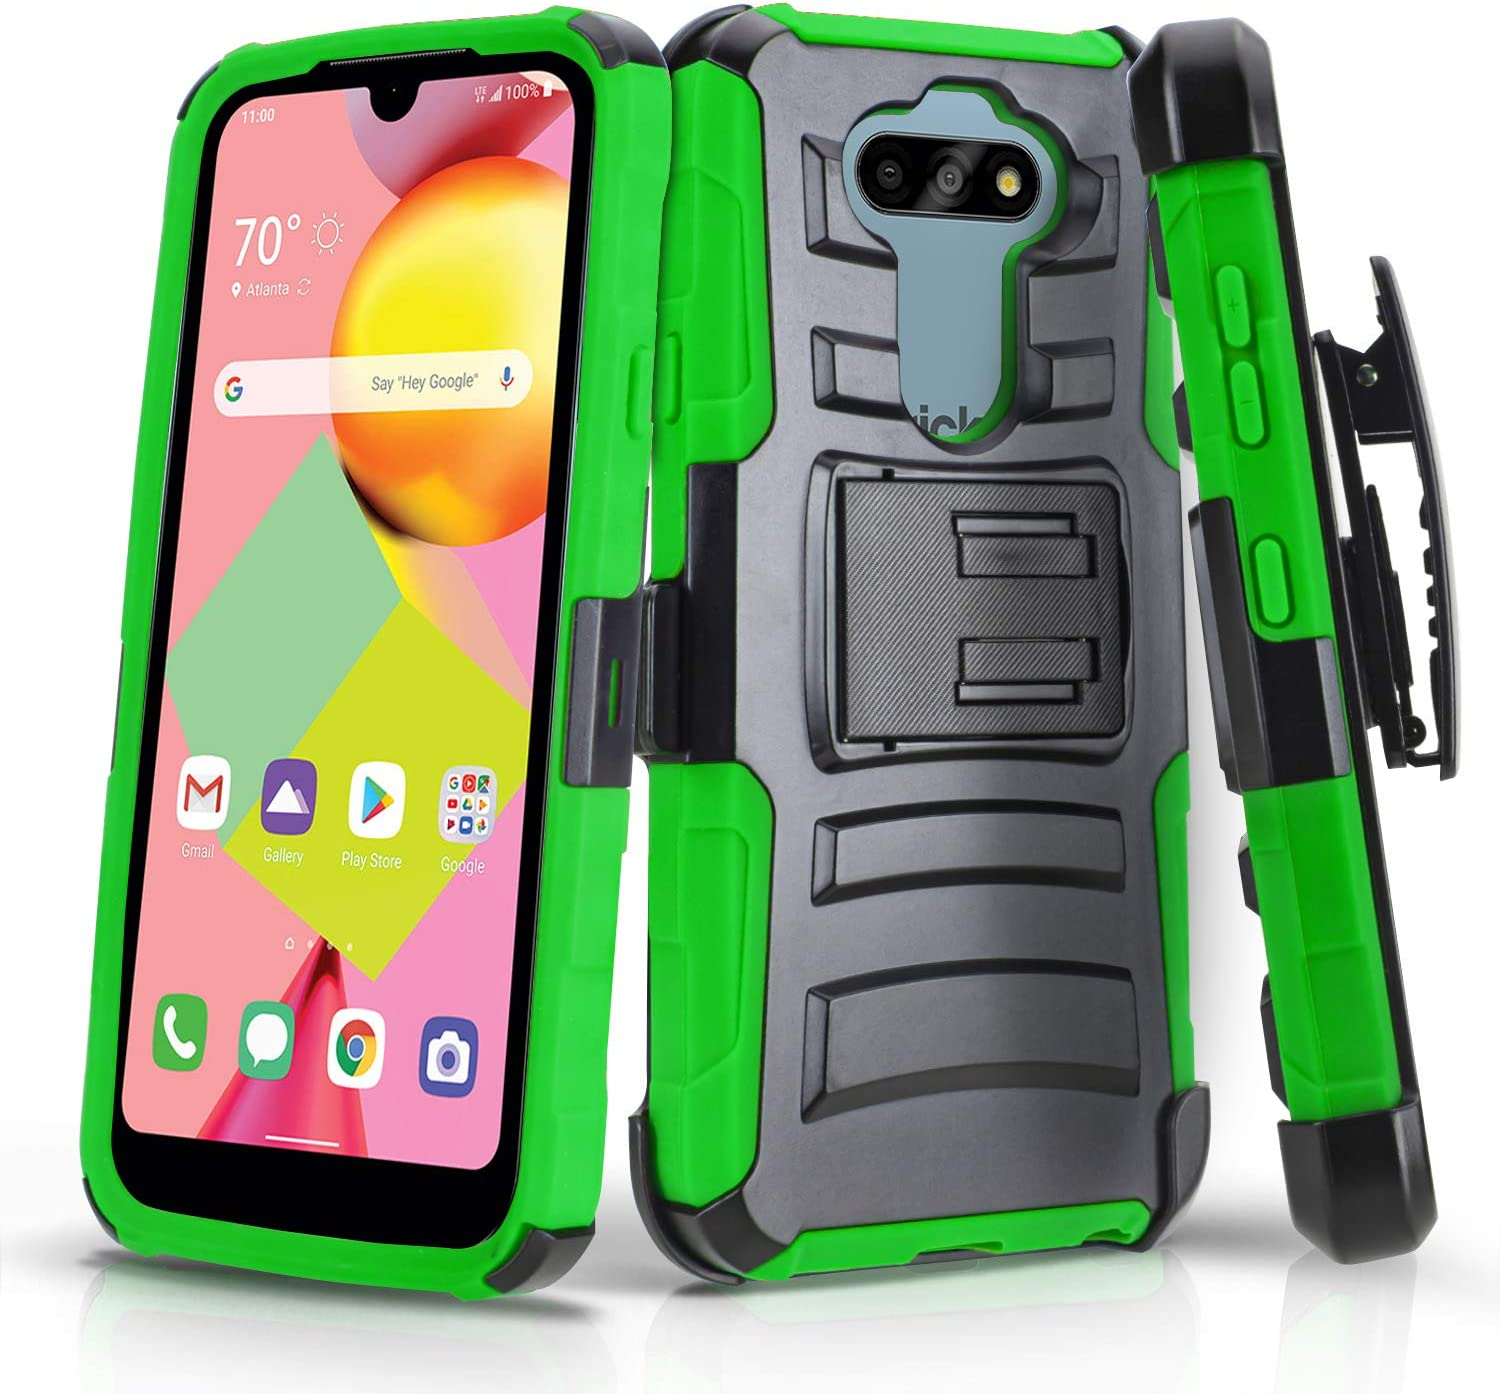 CasemartUSA Phone Case for [LG Risio 4 (Cricket Wireless)], [Refined Series][Green] Shockproof Protective Cover with Built-in Kickstand & Swivel Belt Clip Holster for LG Risio 4 (Cricket Wireless)